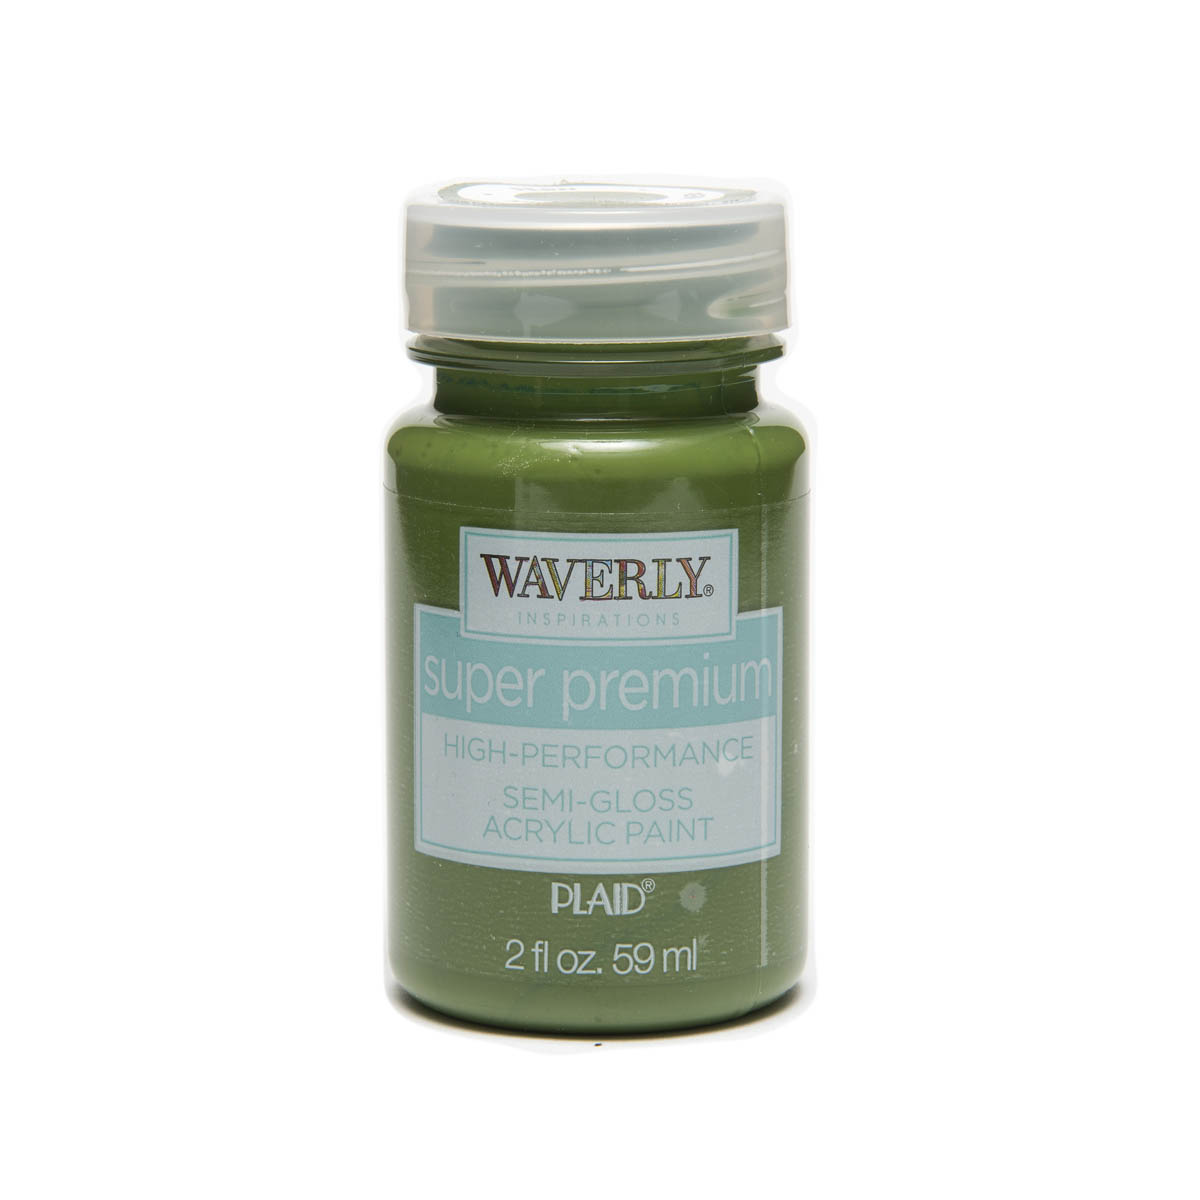 Waverly ® Inspirations Super Premium Semi-Gloss Acrylic Paint - Fern, 2 oz.